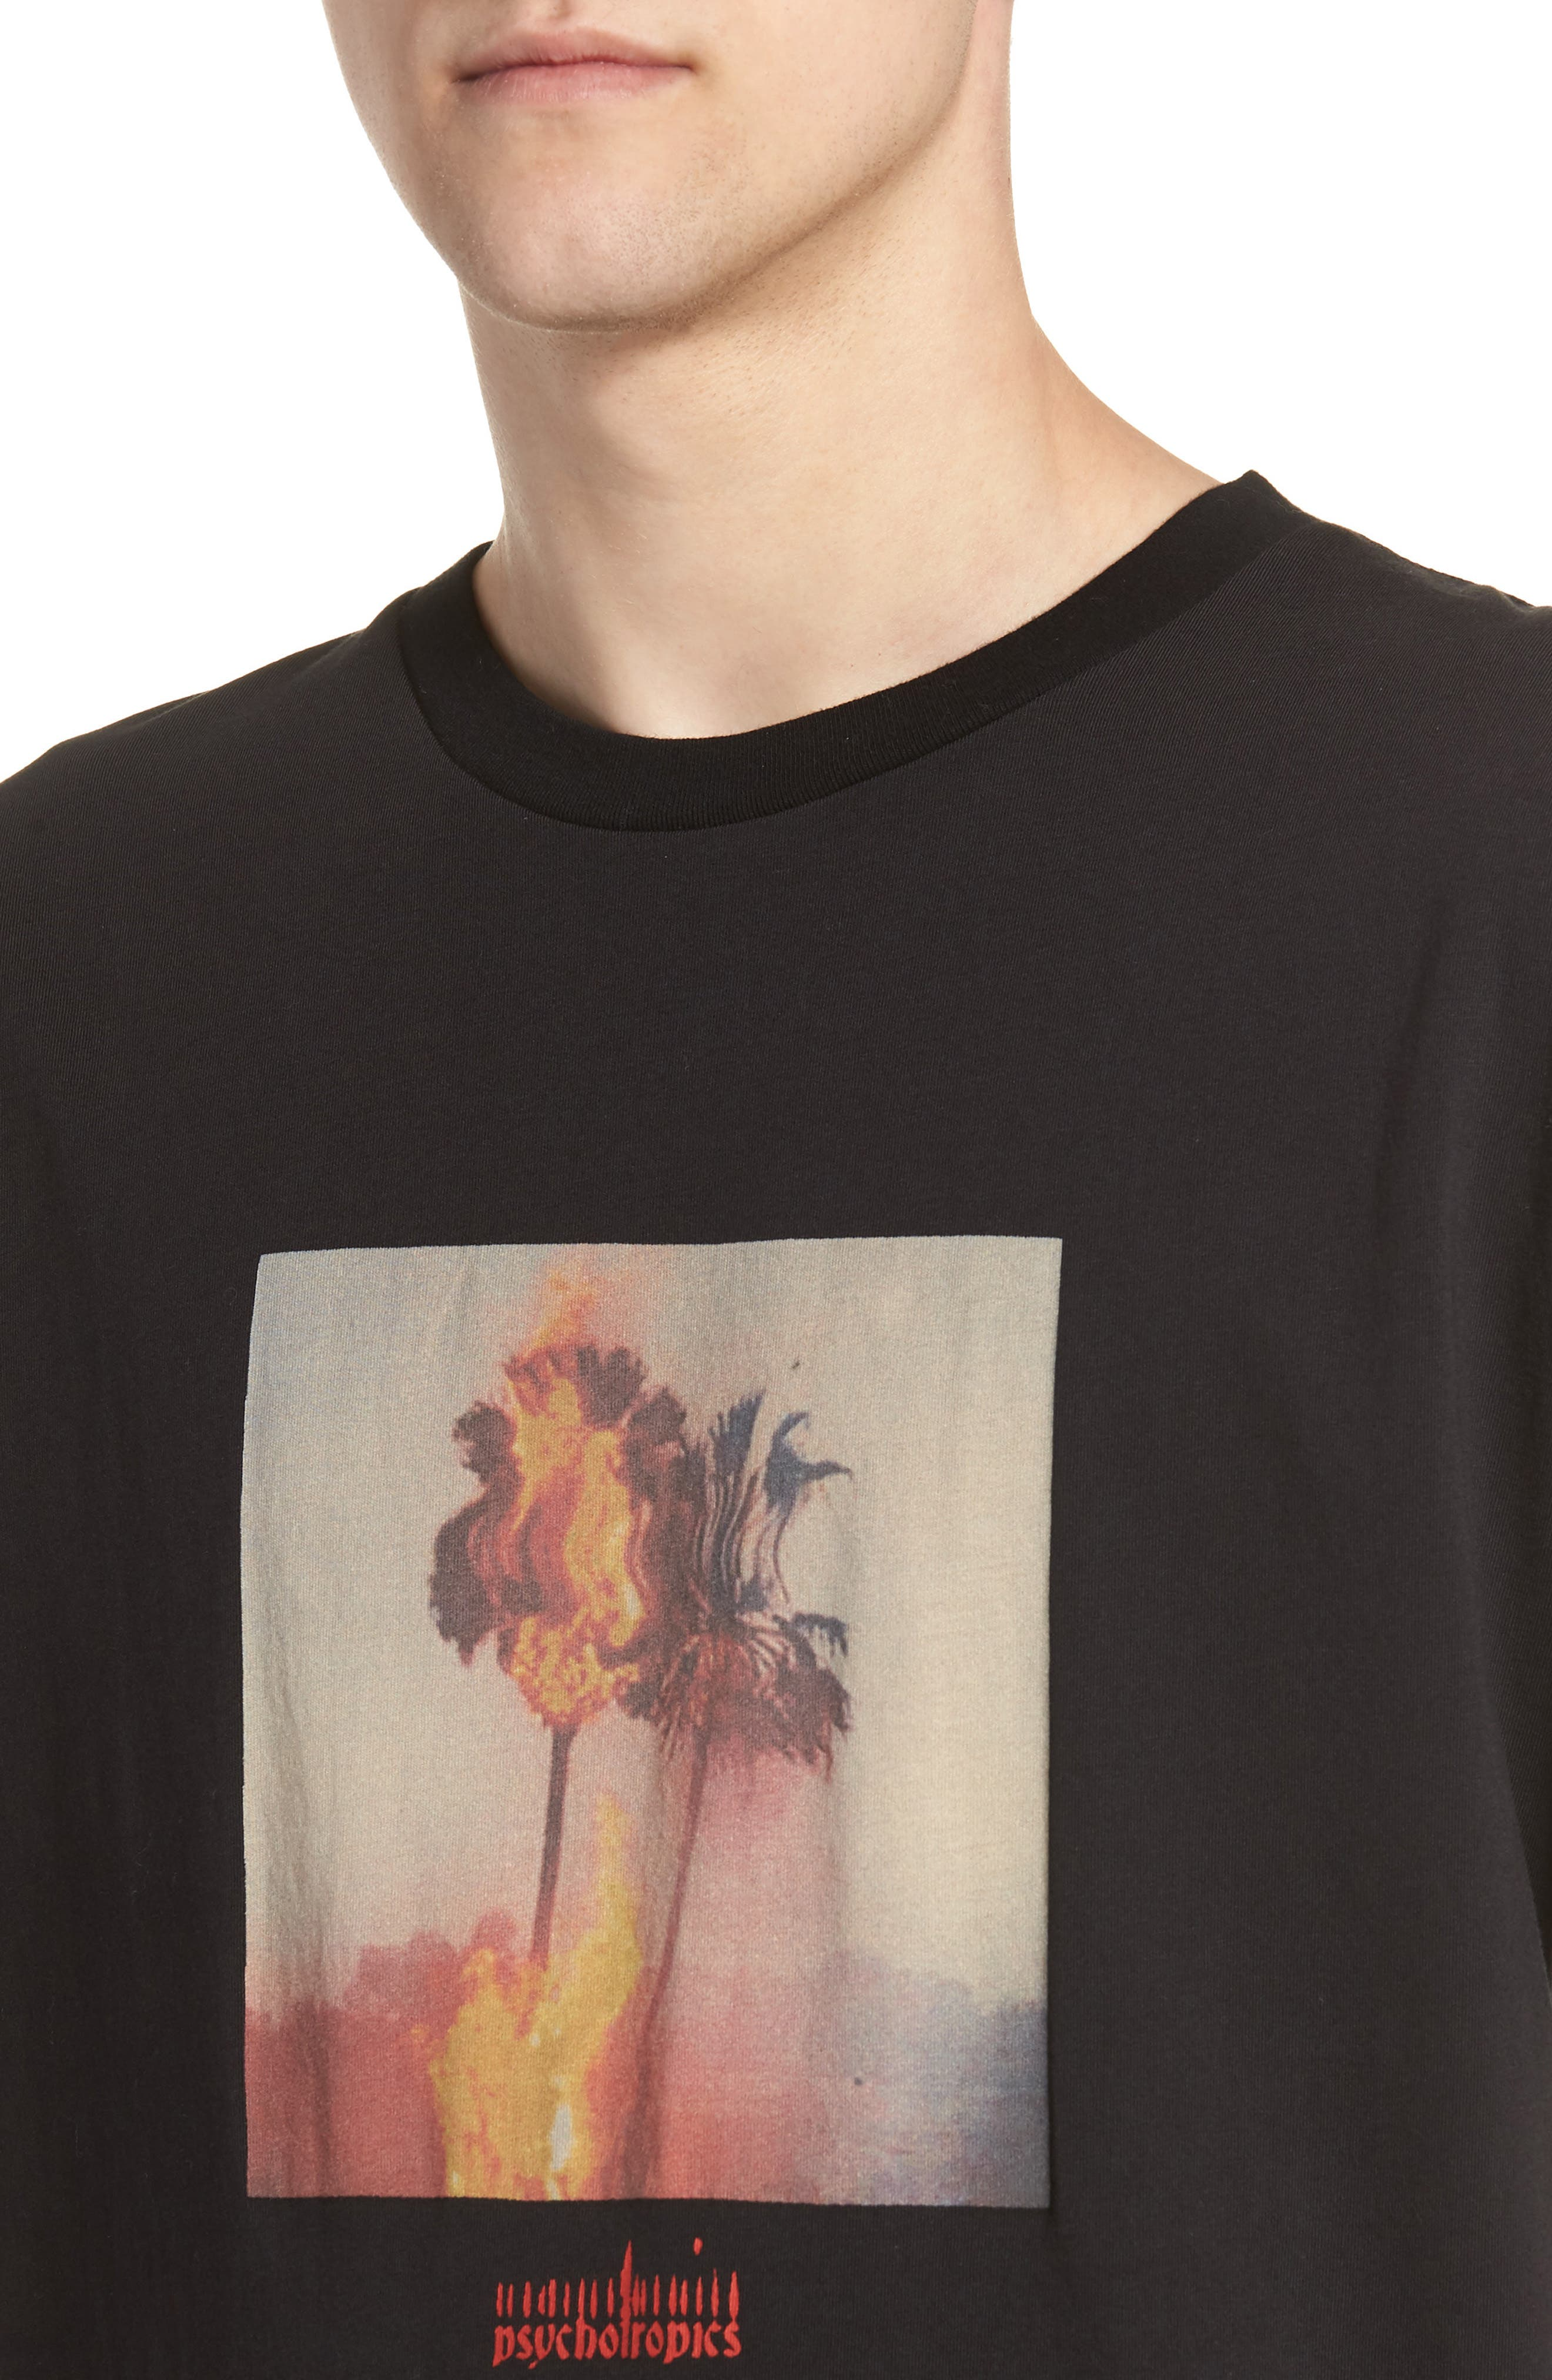 Psychotropics T-Shirt,                             Alternate thumbnail 4, color,                             009